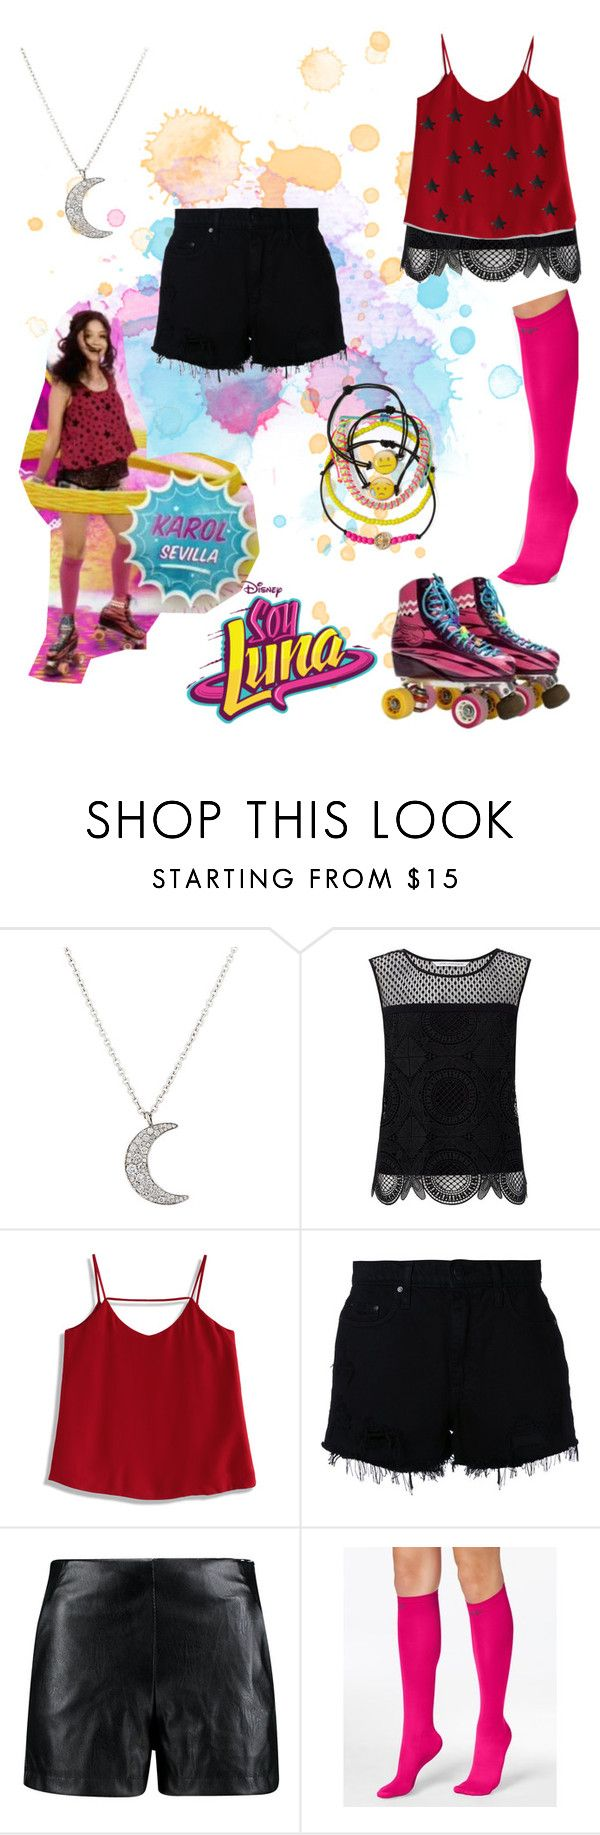 """soy luna"" by maria-look on Polyvore featuring Finn, Diane Von Furstenberg, Chicwish, Nobody Denim, Boohoo, Pretty Polly and Carole"